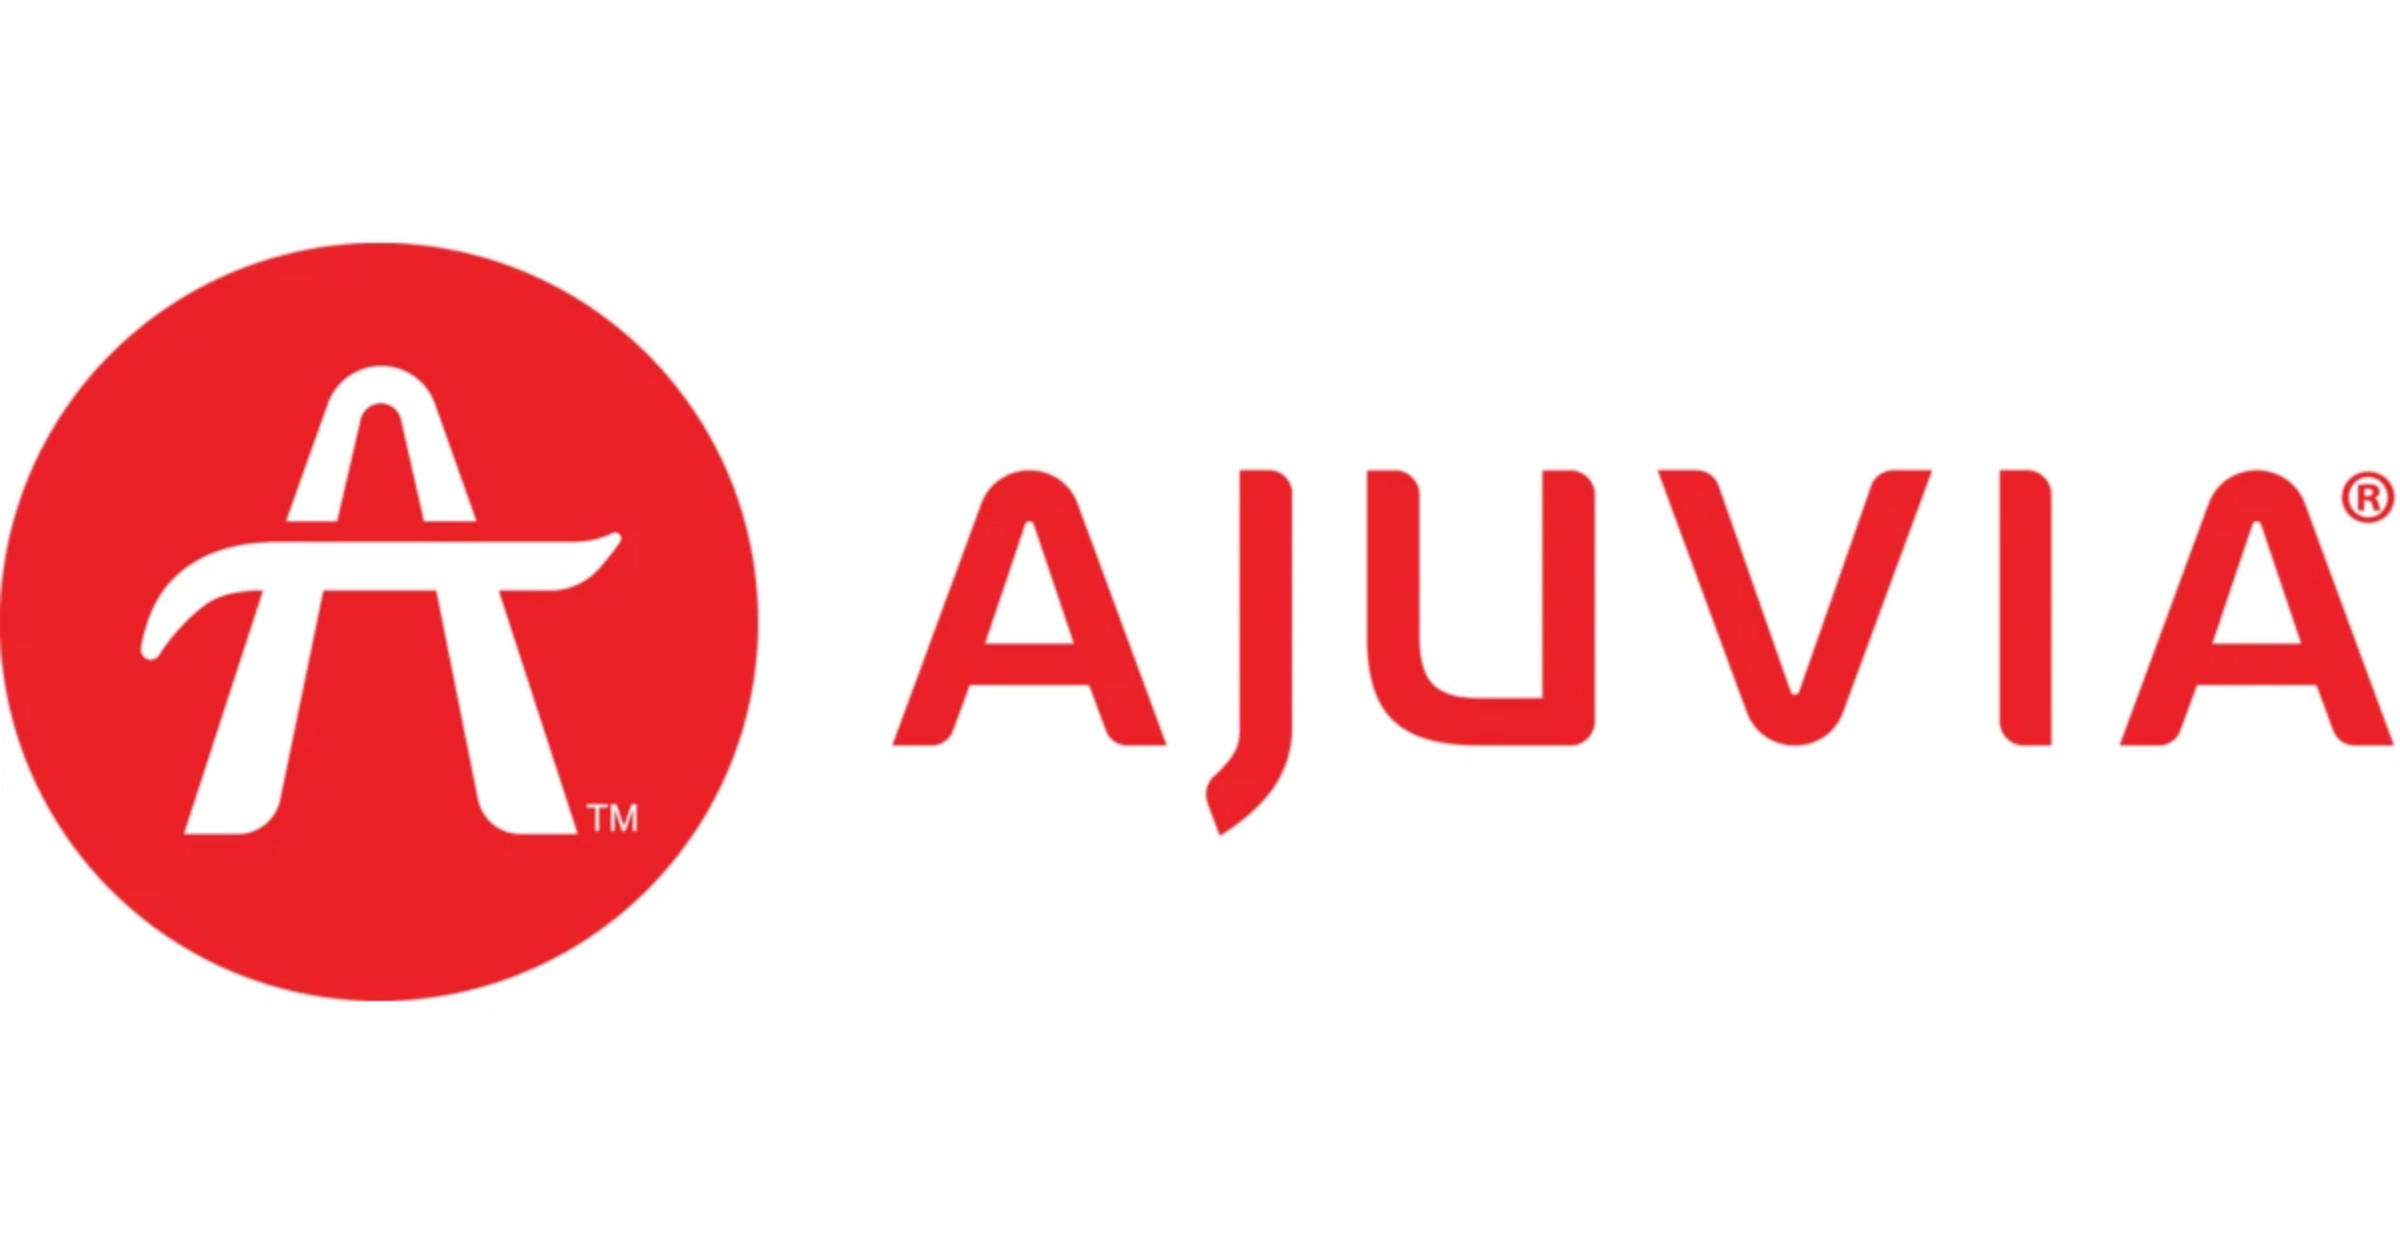 The Ajuvia medical device company logo